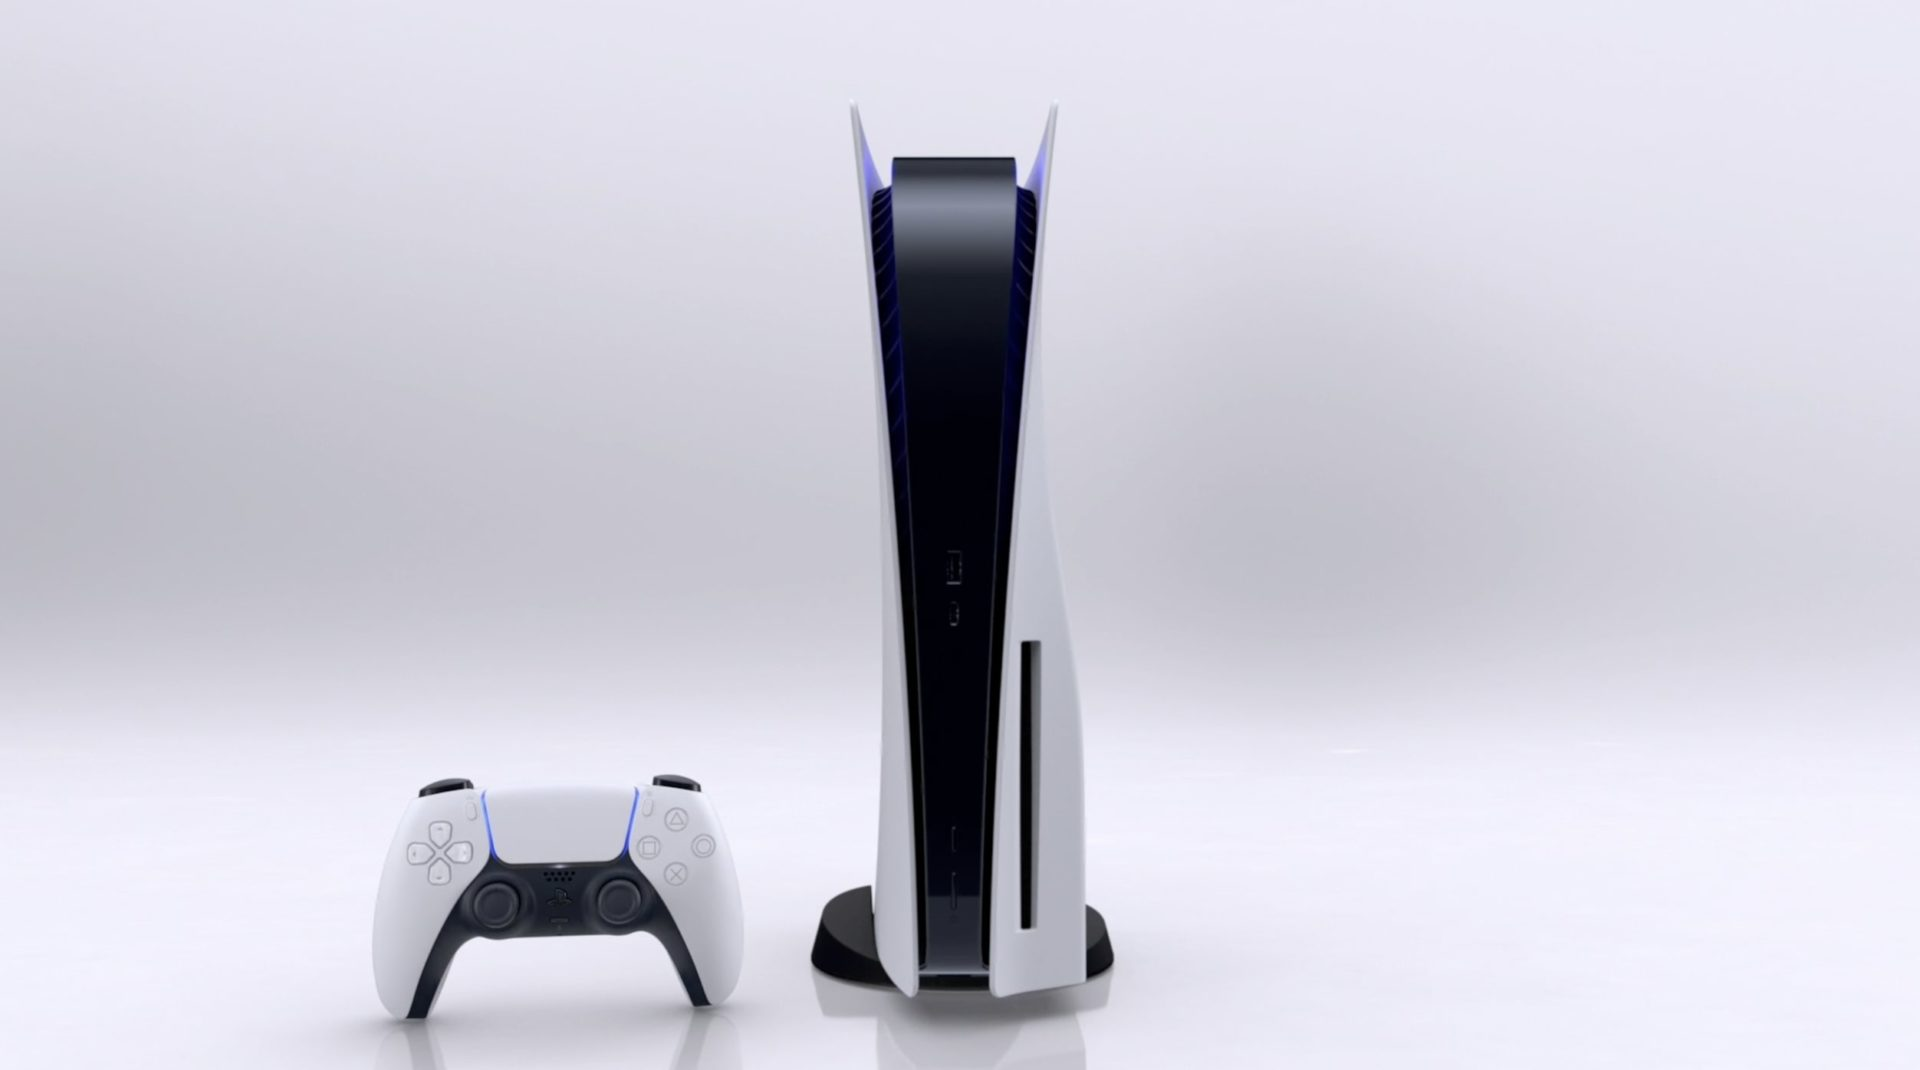 PS5 Next To Controller